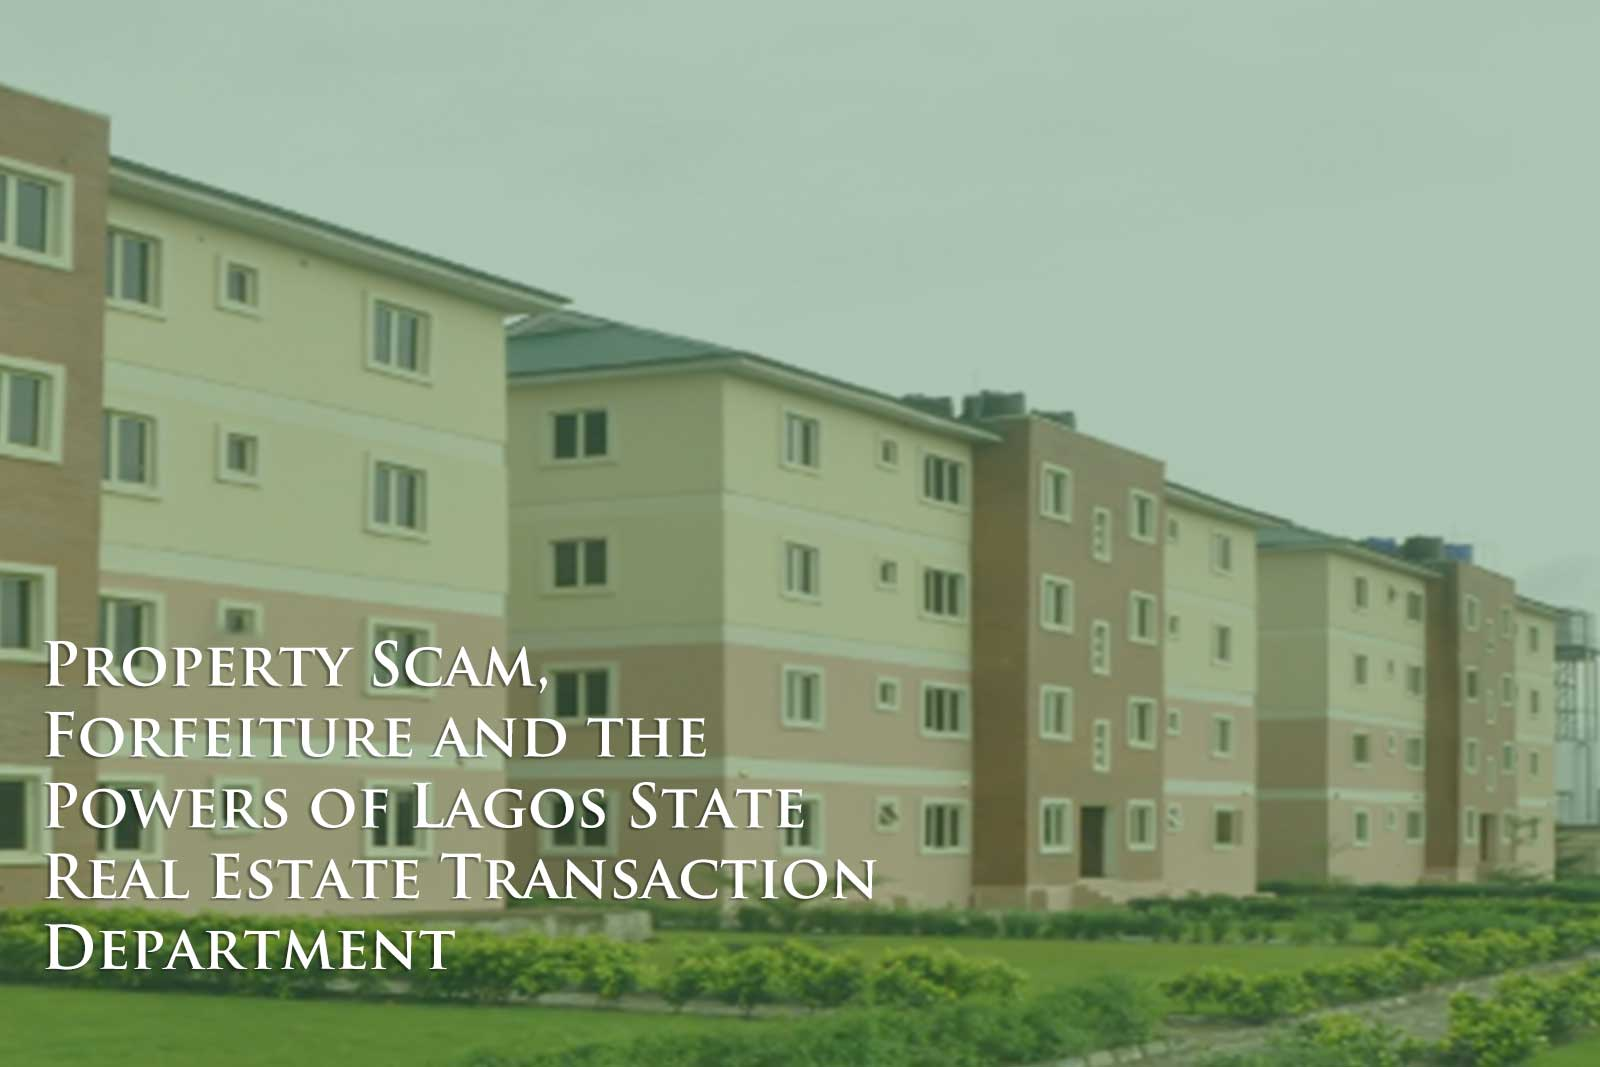 Property Scam, Forfeiture and the Powers of Lagos State Real Estate Transaction Department